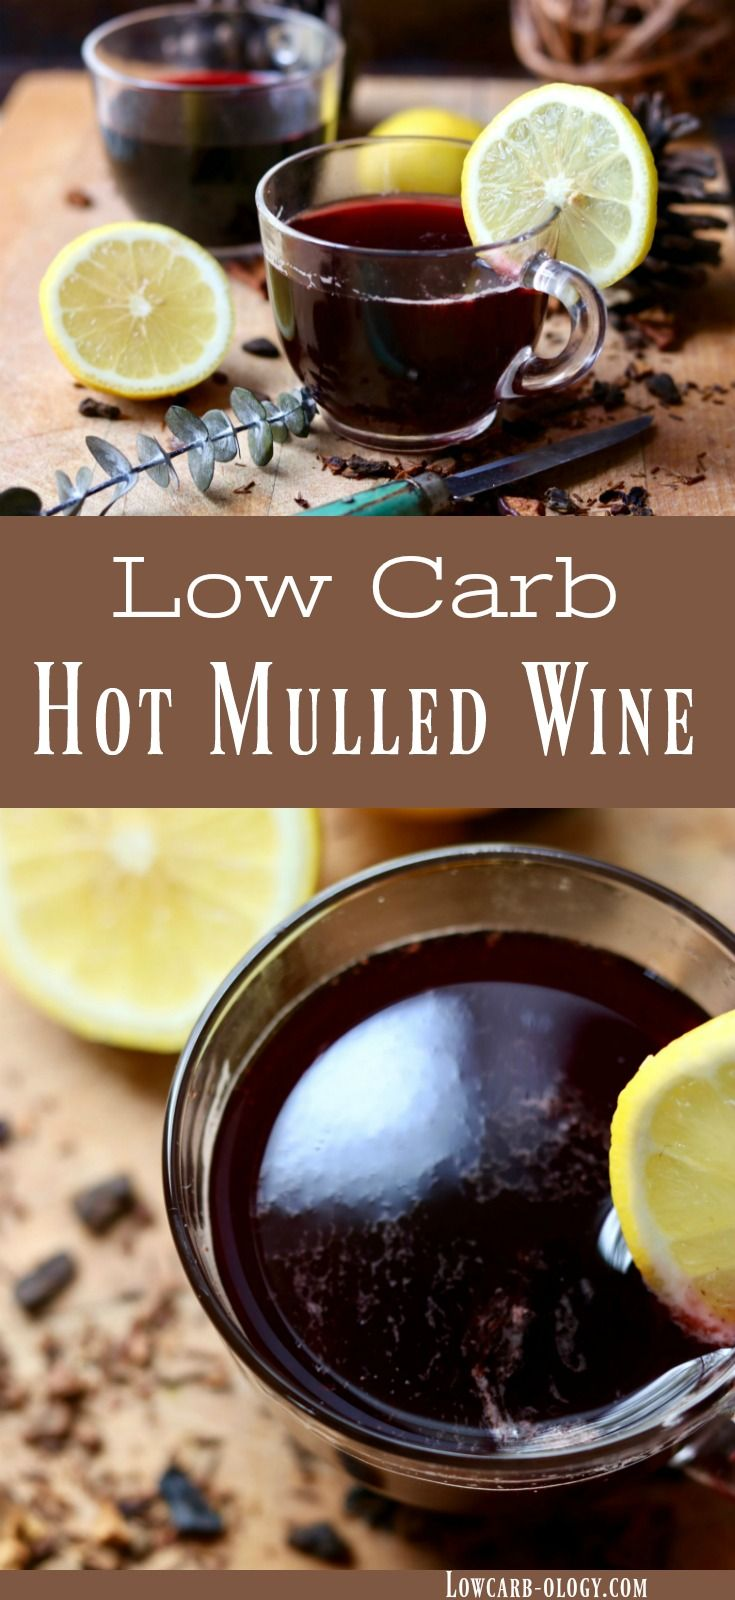 Hot mulled wine recipe is an easy, low carb holiday punch you can put together quickly or simmer in a slow cooker. Just 1 net carb - great winter cocktail. perfect for holiday sipping. #lowcarb #holidays #cocktails #punch from lowcarb-ology.com